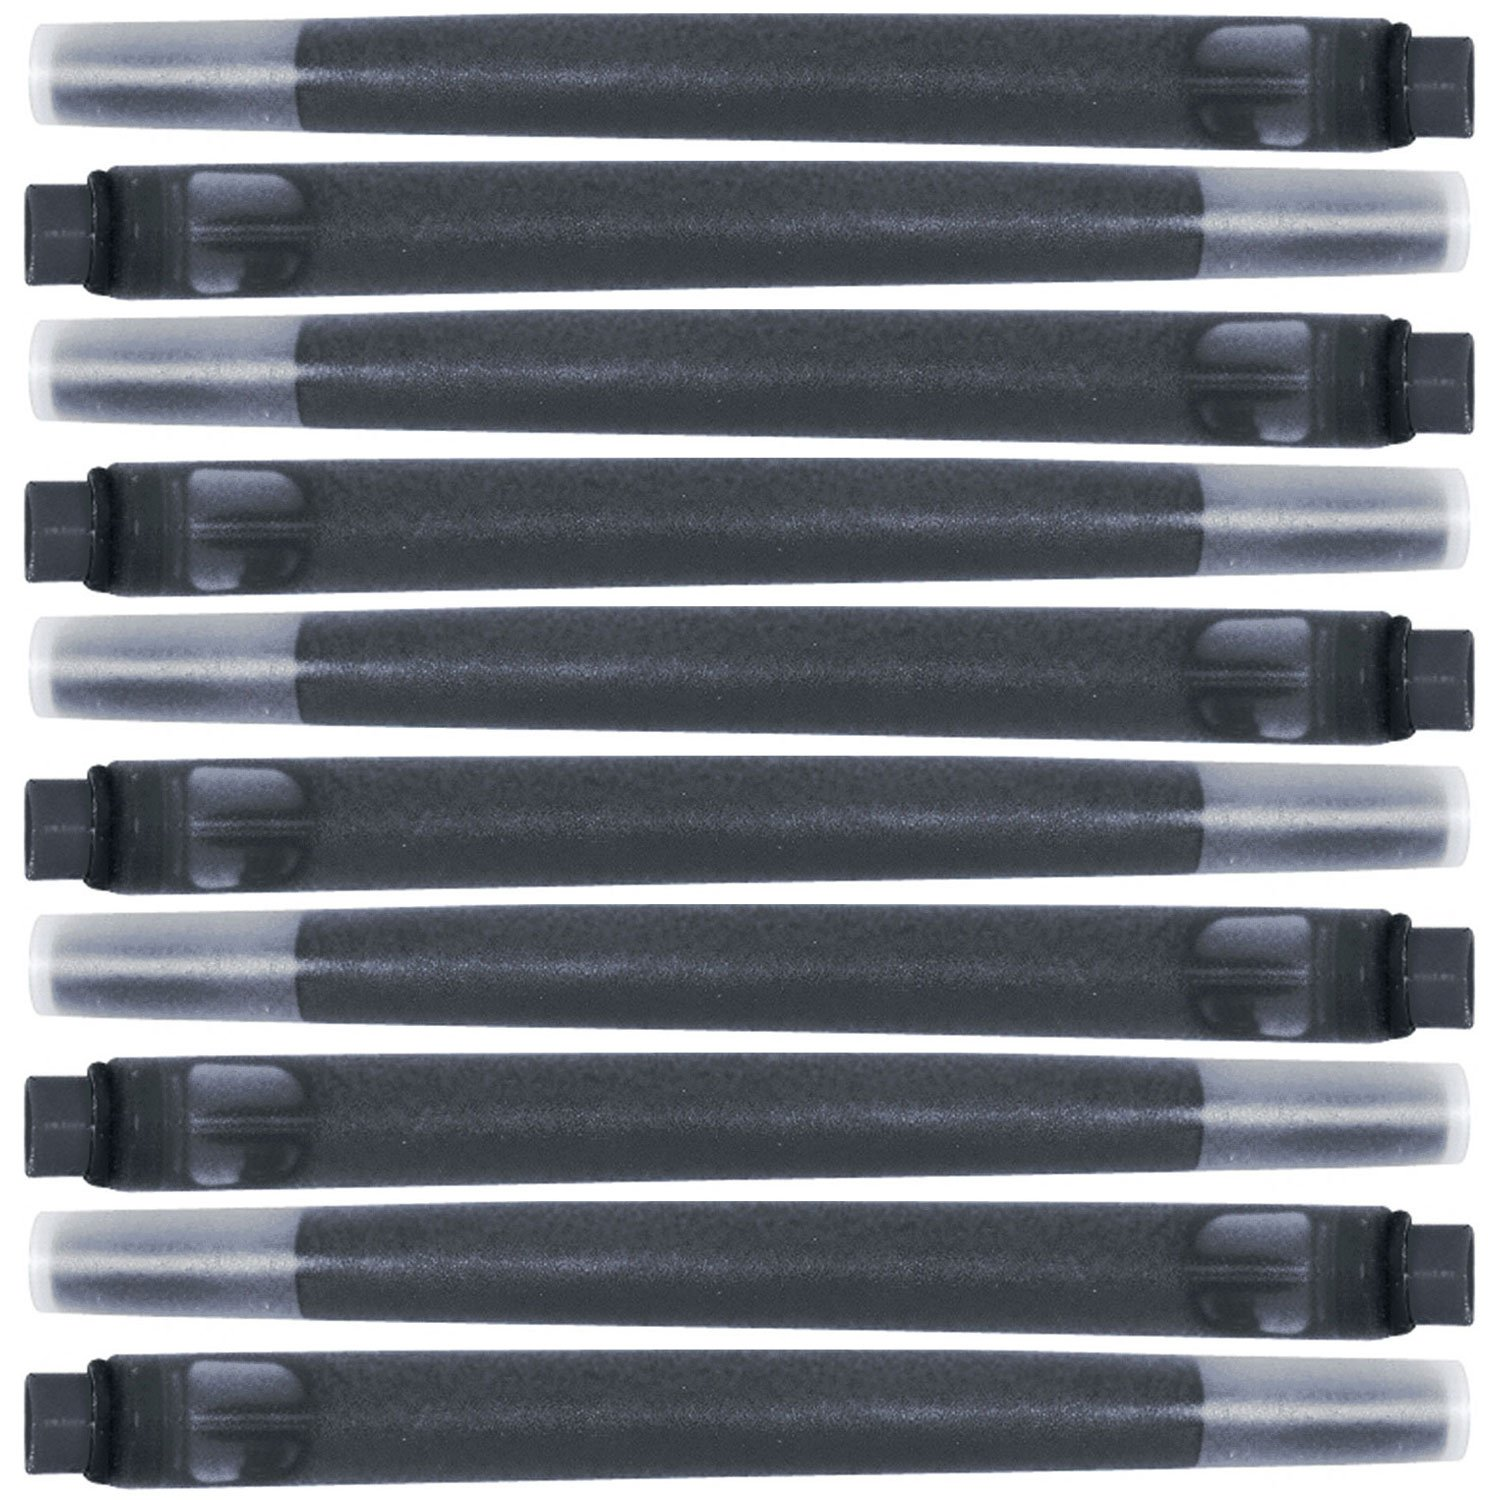 Parker Quink Permanent Ink Fountain Pen Refill Cartridges, 10 Black Ink Refills (3011031PP) by Parker